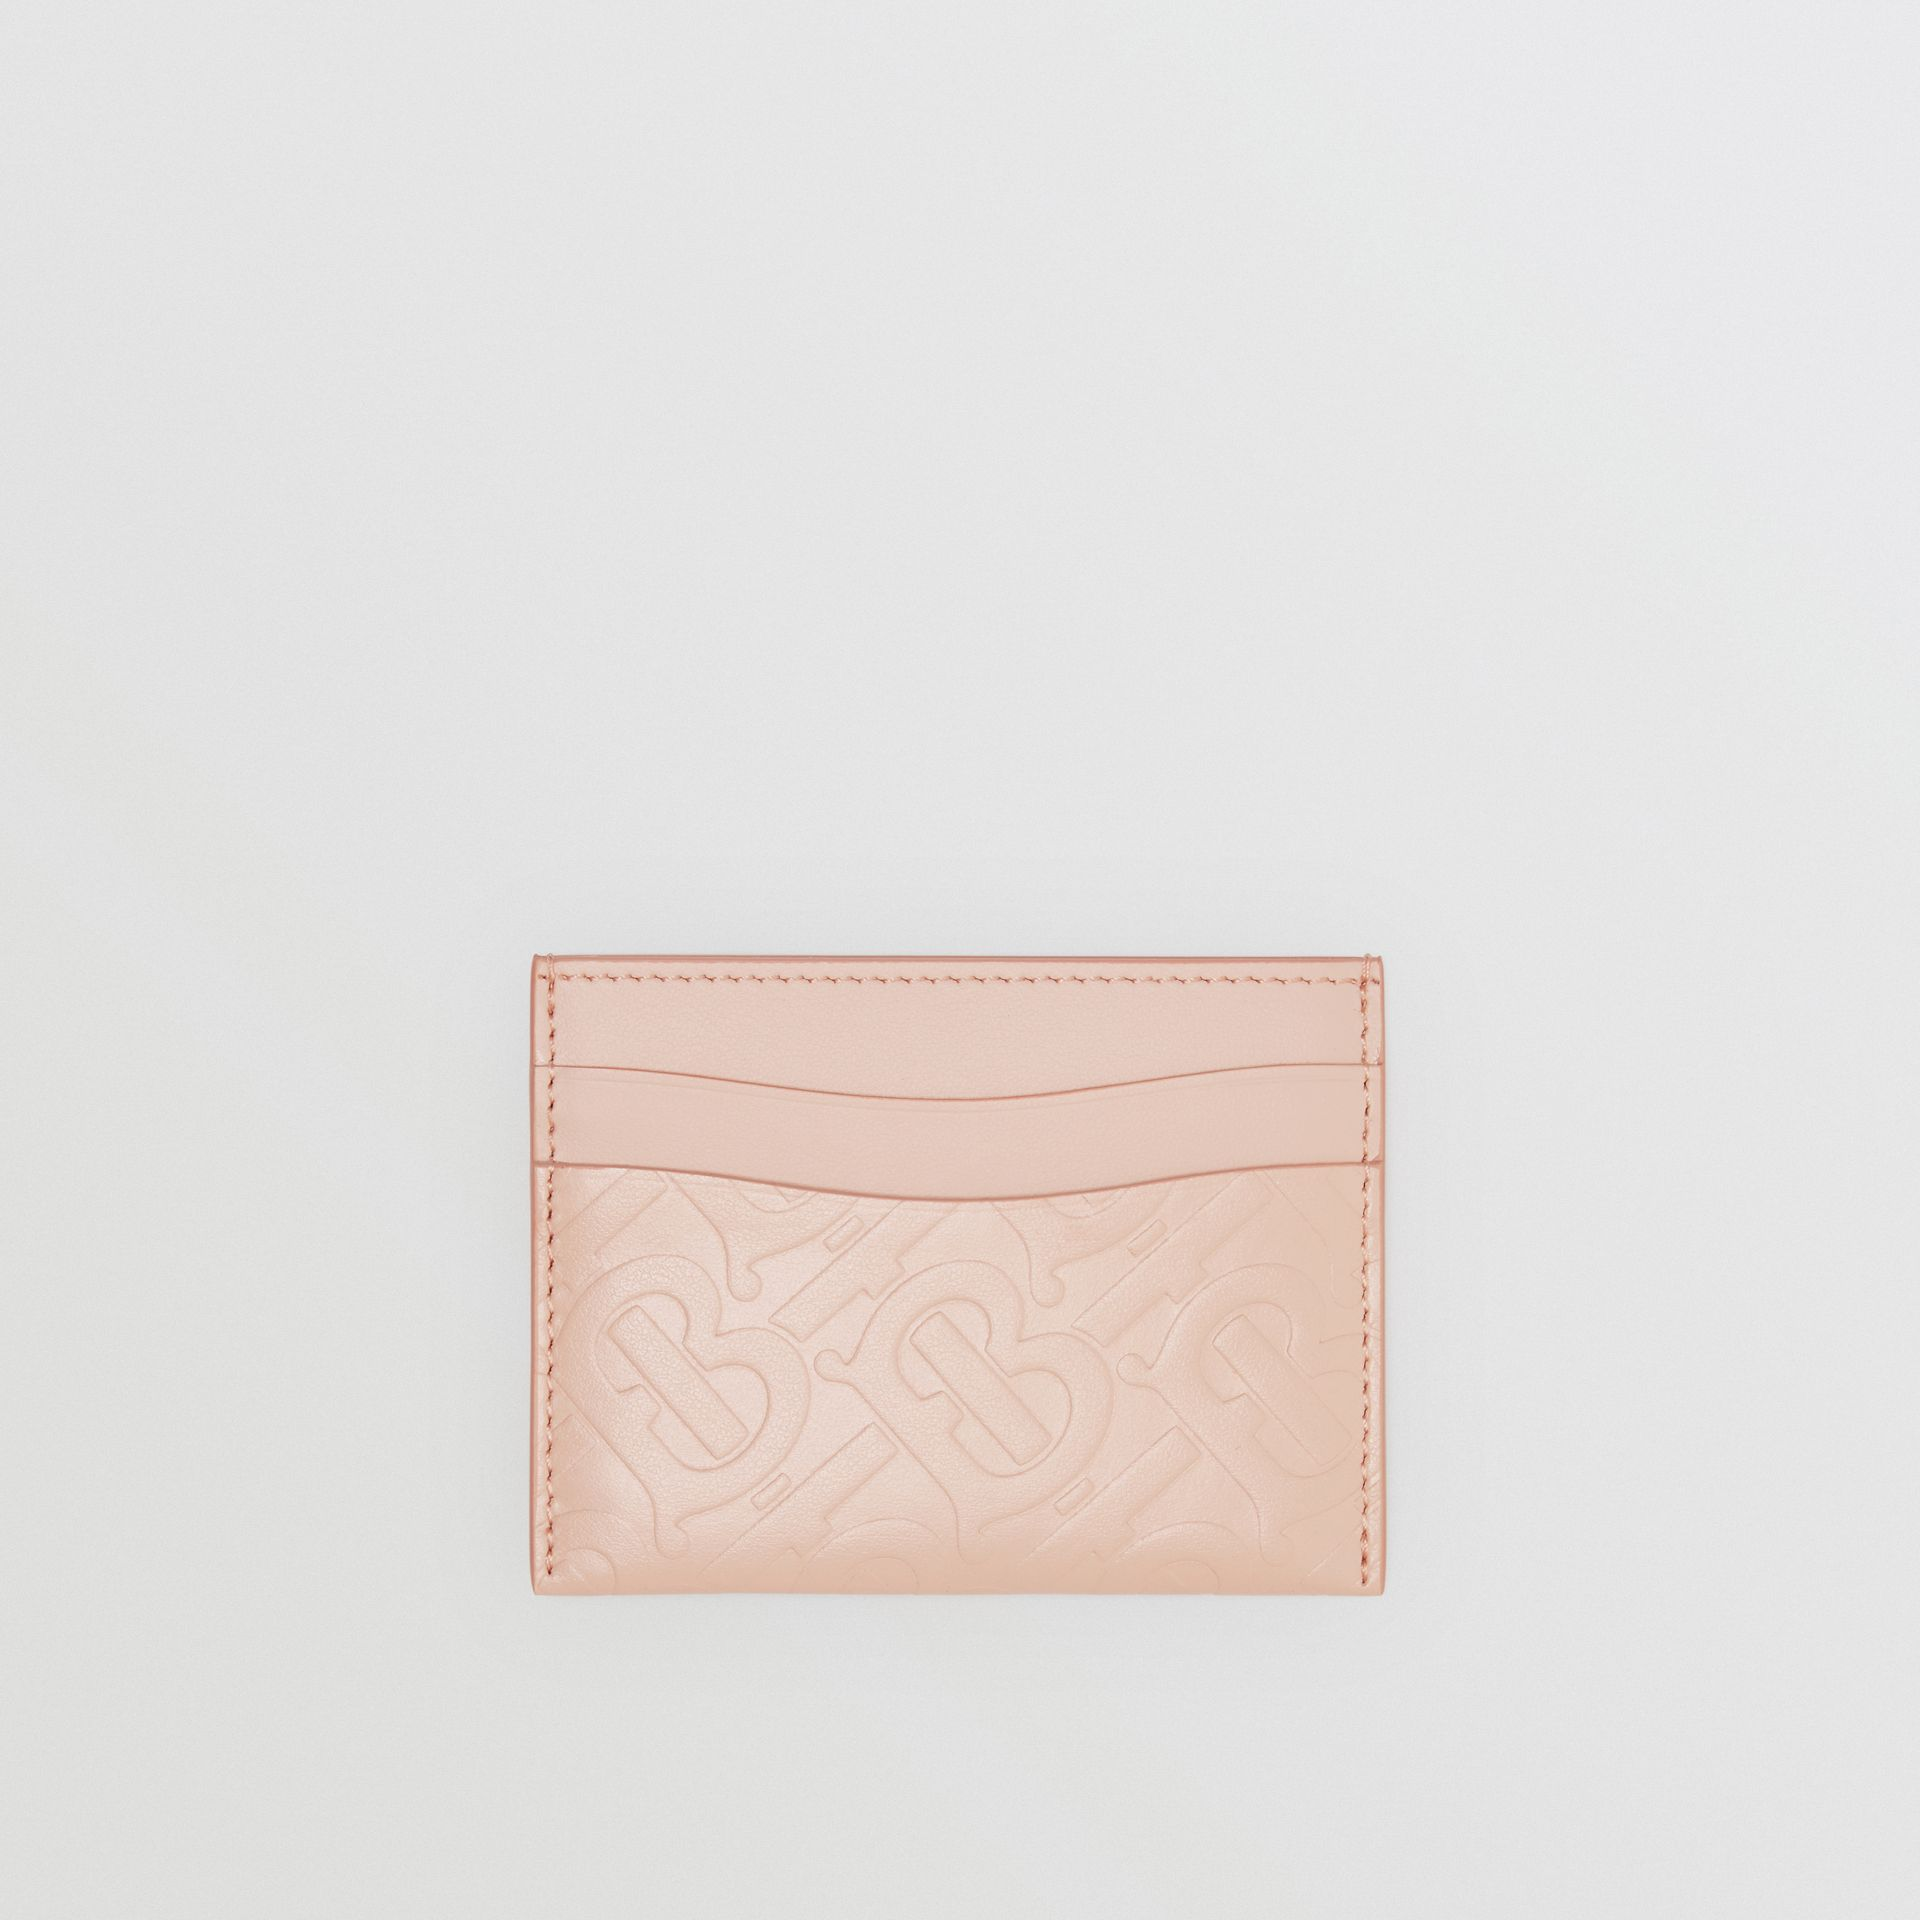 Monogram Leather Card Case in Rose Beige - Women | Burberry United Kingdom - gallery image 0